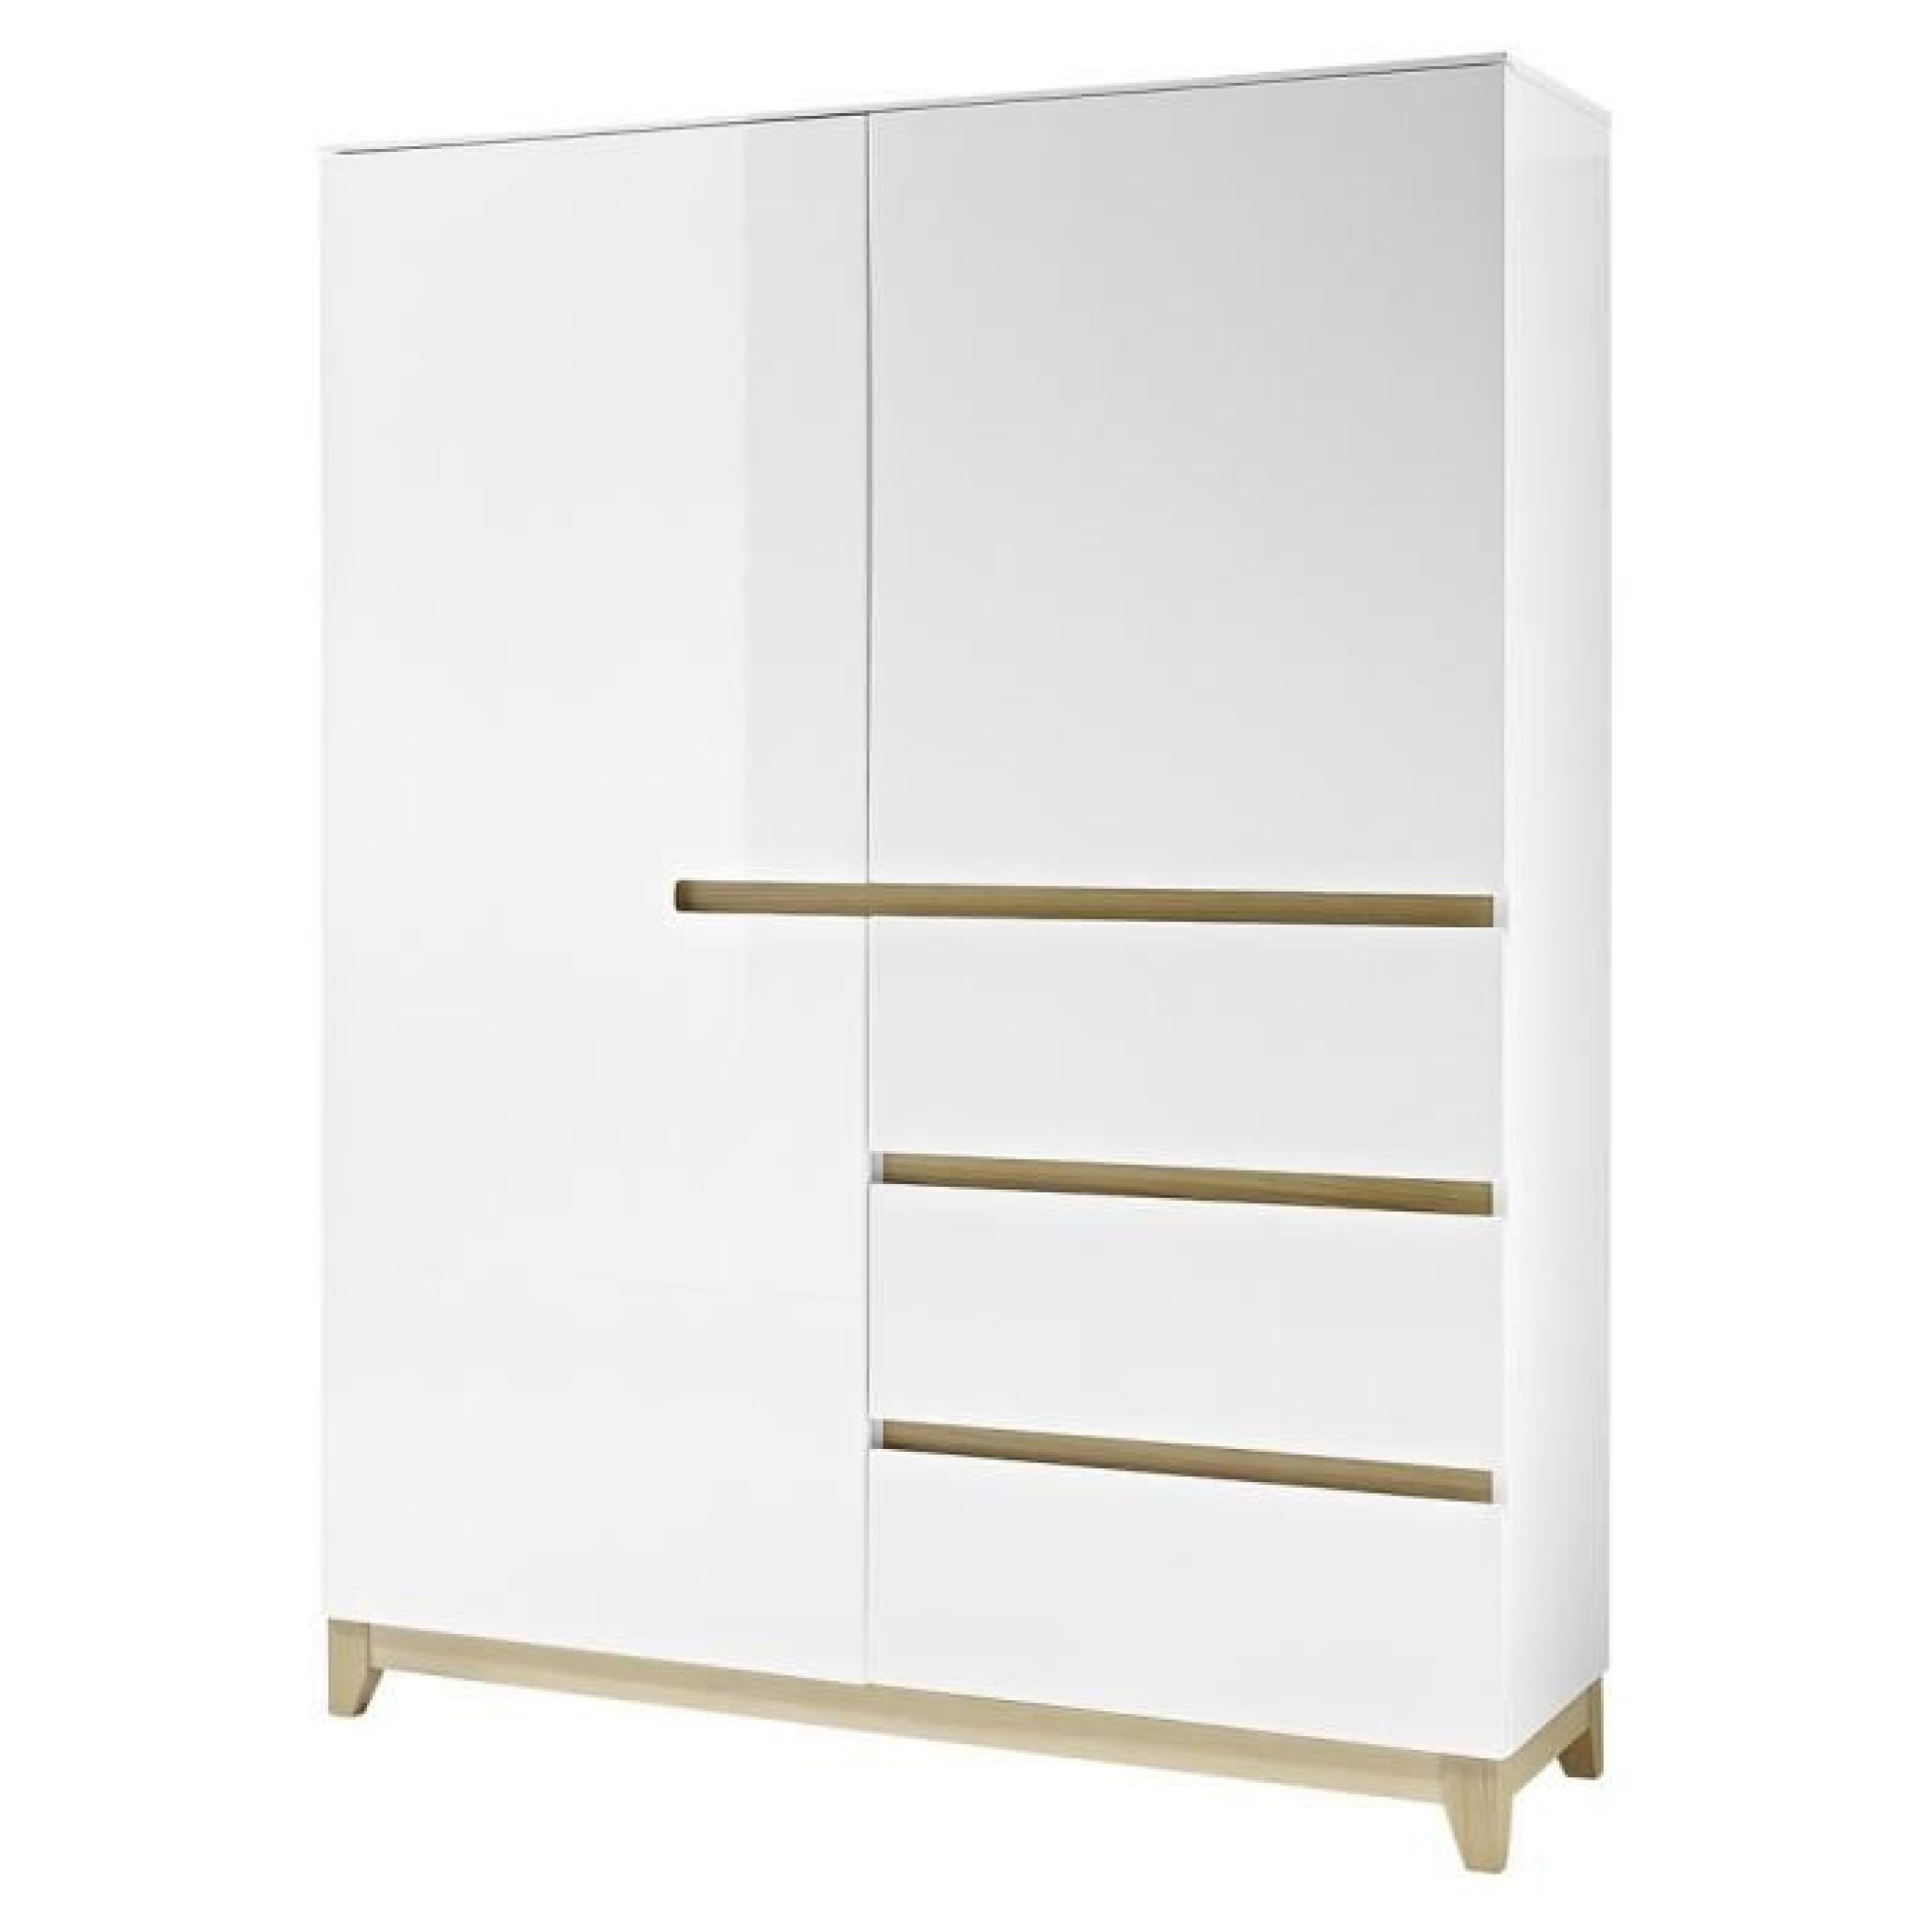 buffet haut riva 2 blanc laqu achat vente buffet pas cher couleur et. Black Bedroom Furniture Sets. Home Design Ideas